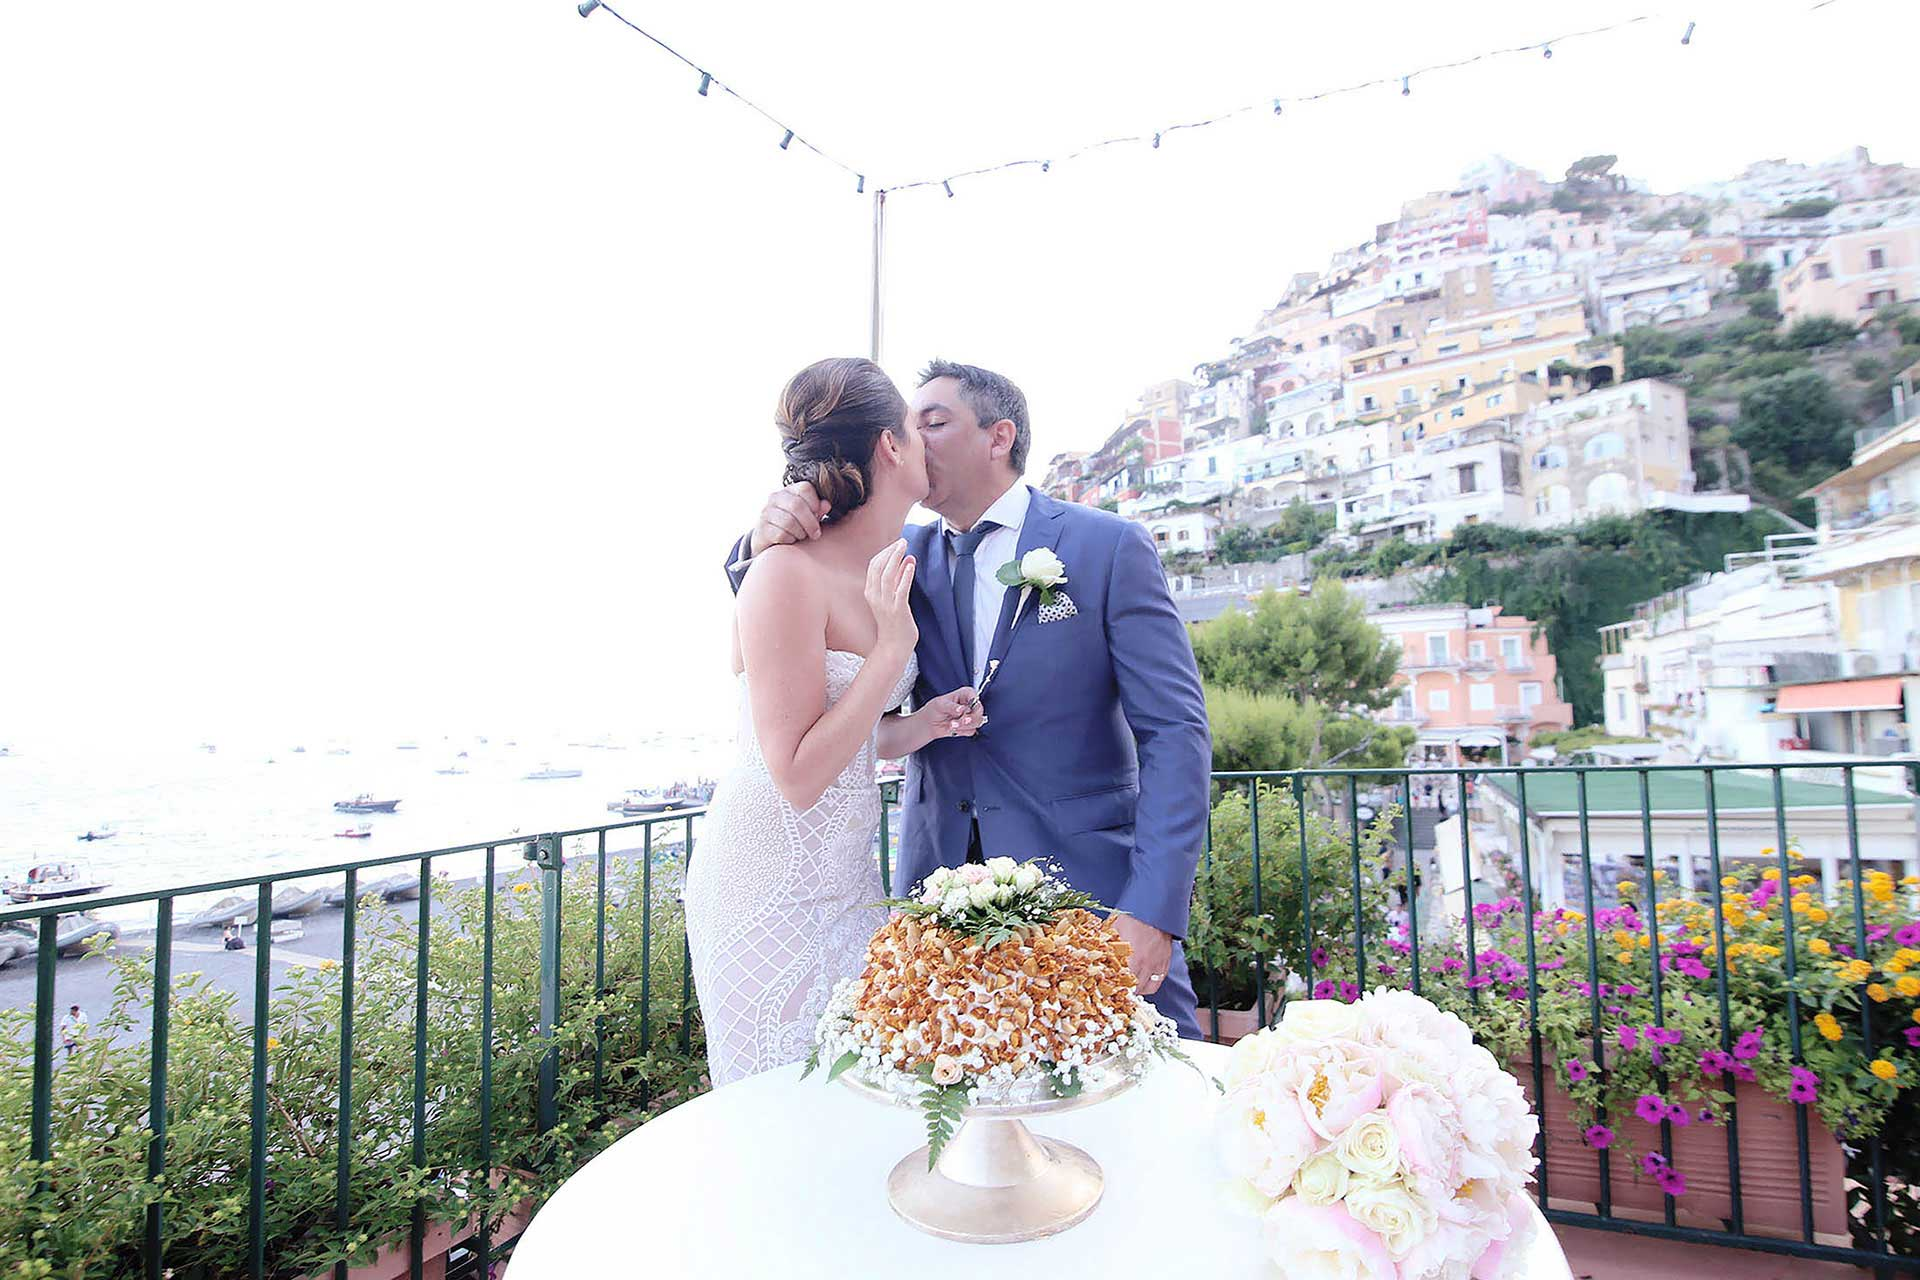 Destination Symbolic Wedding Hotel Buca di Bacco Positano Shooting Village Amalfi Coast Italy Restaurant Claudia Francese Photography Sister